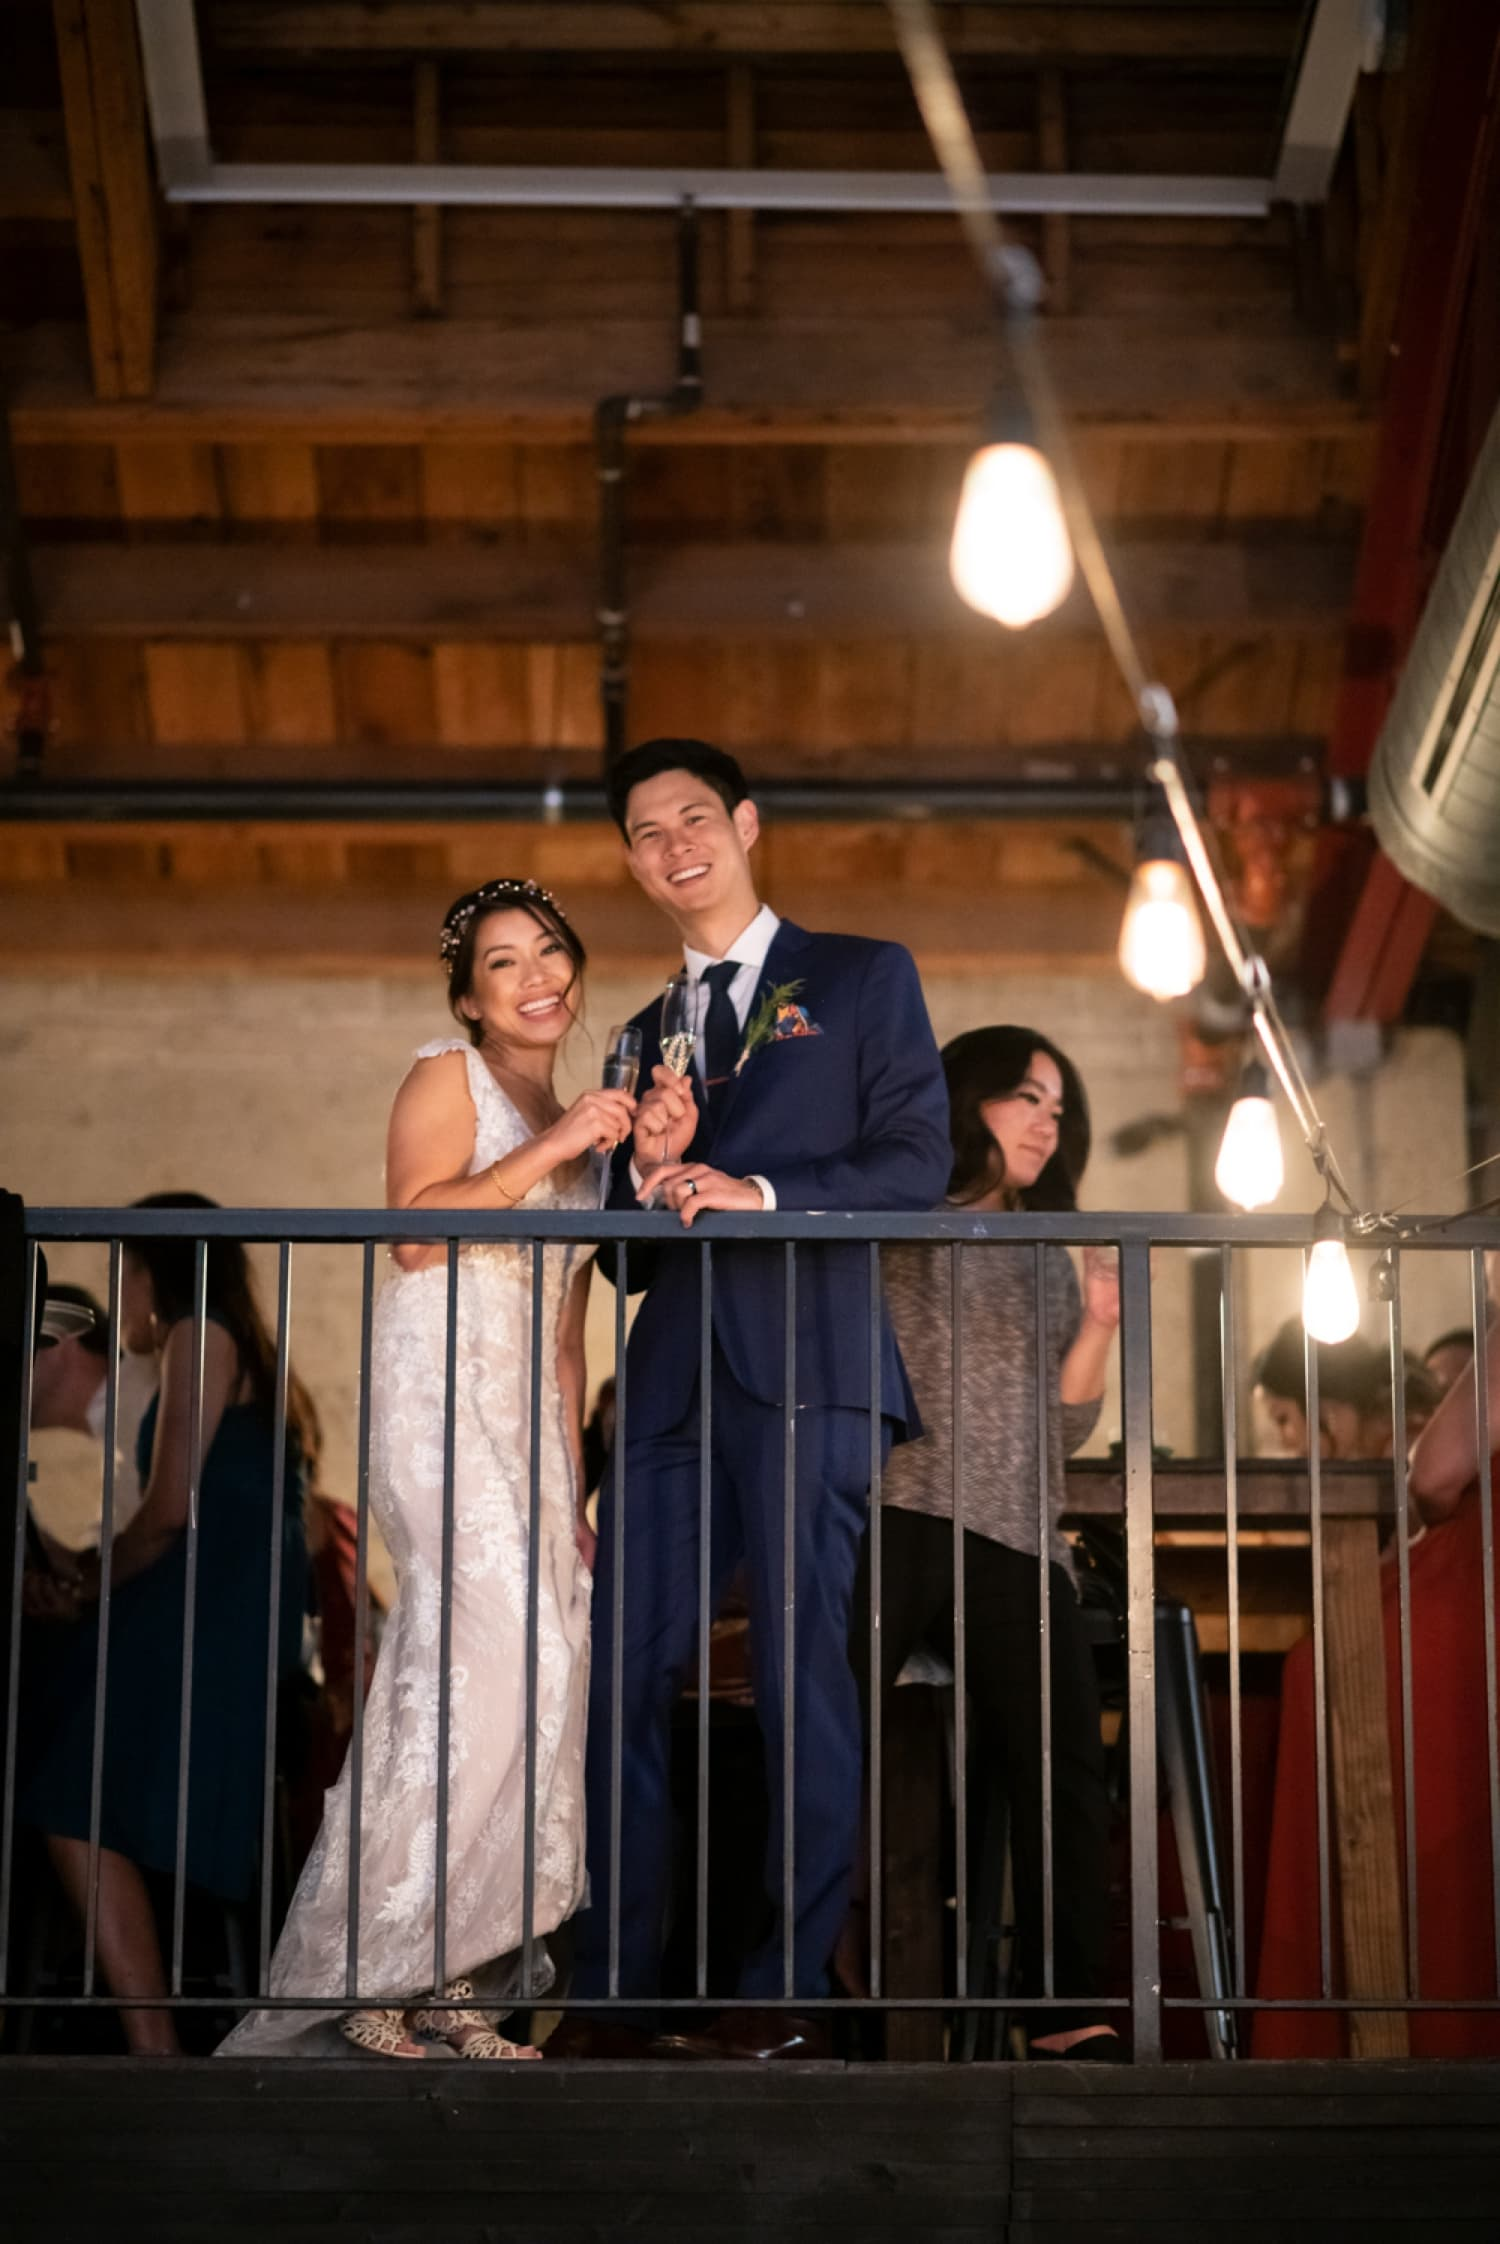 Bride and groom in the loft at Luce Loft in San Diego.